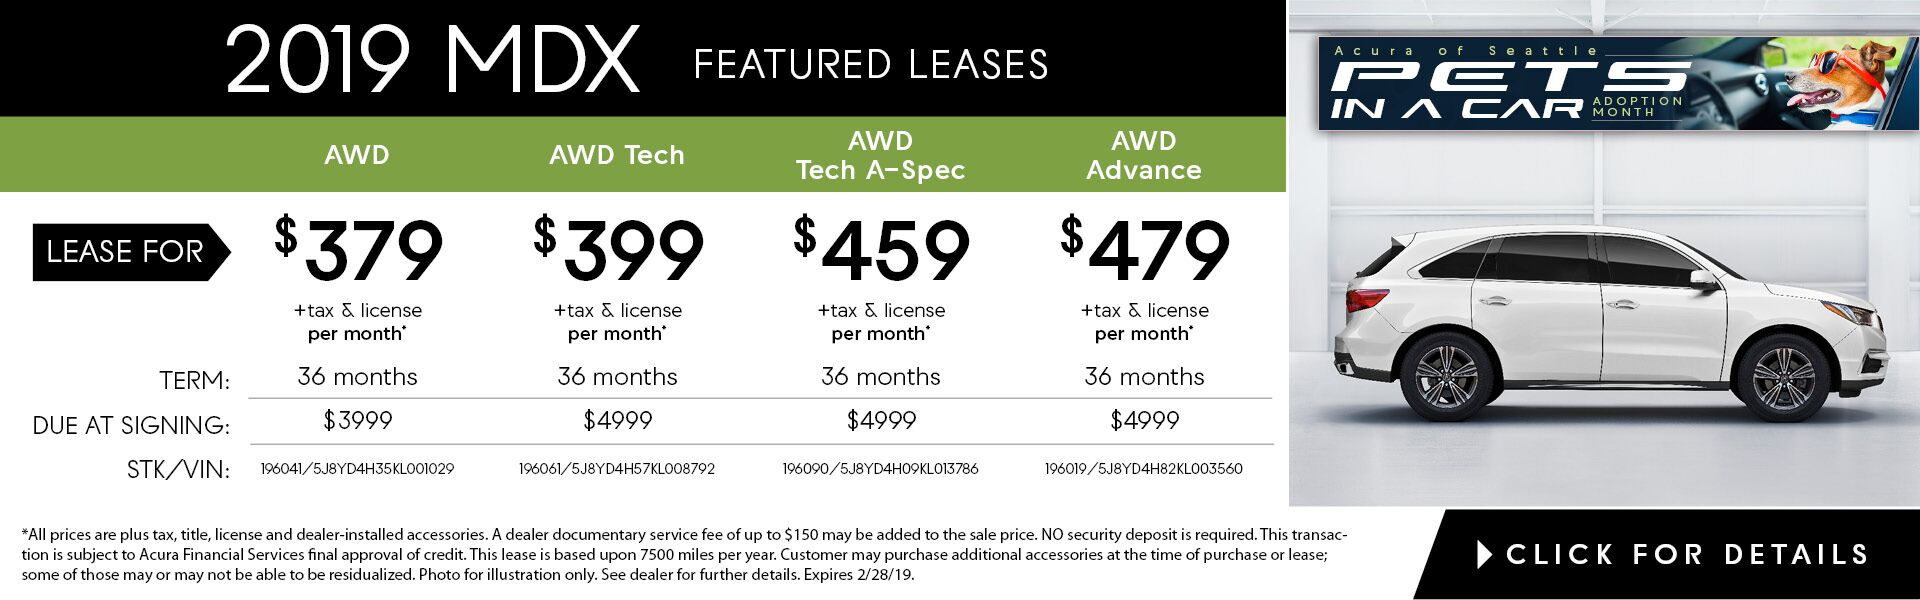 MDX Feb. Featured Lease